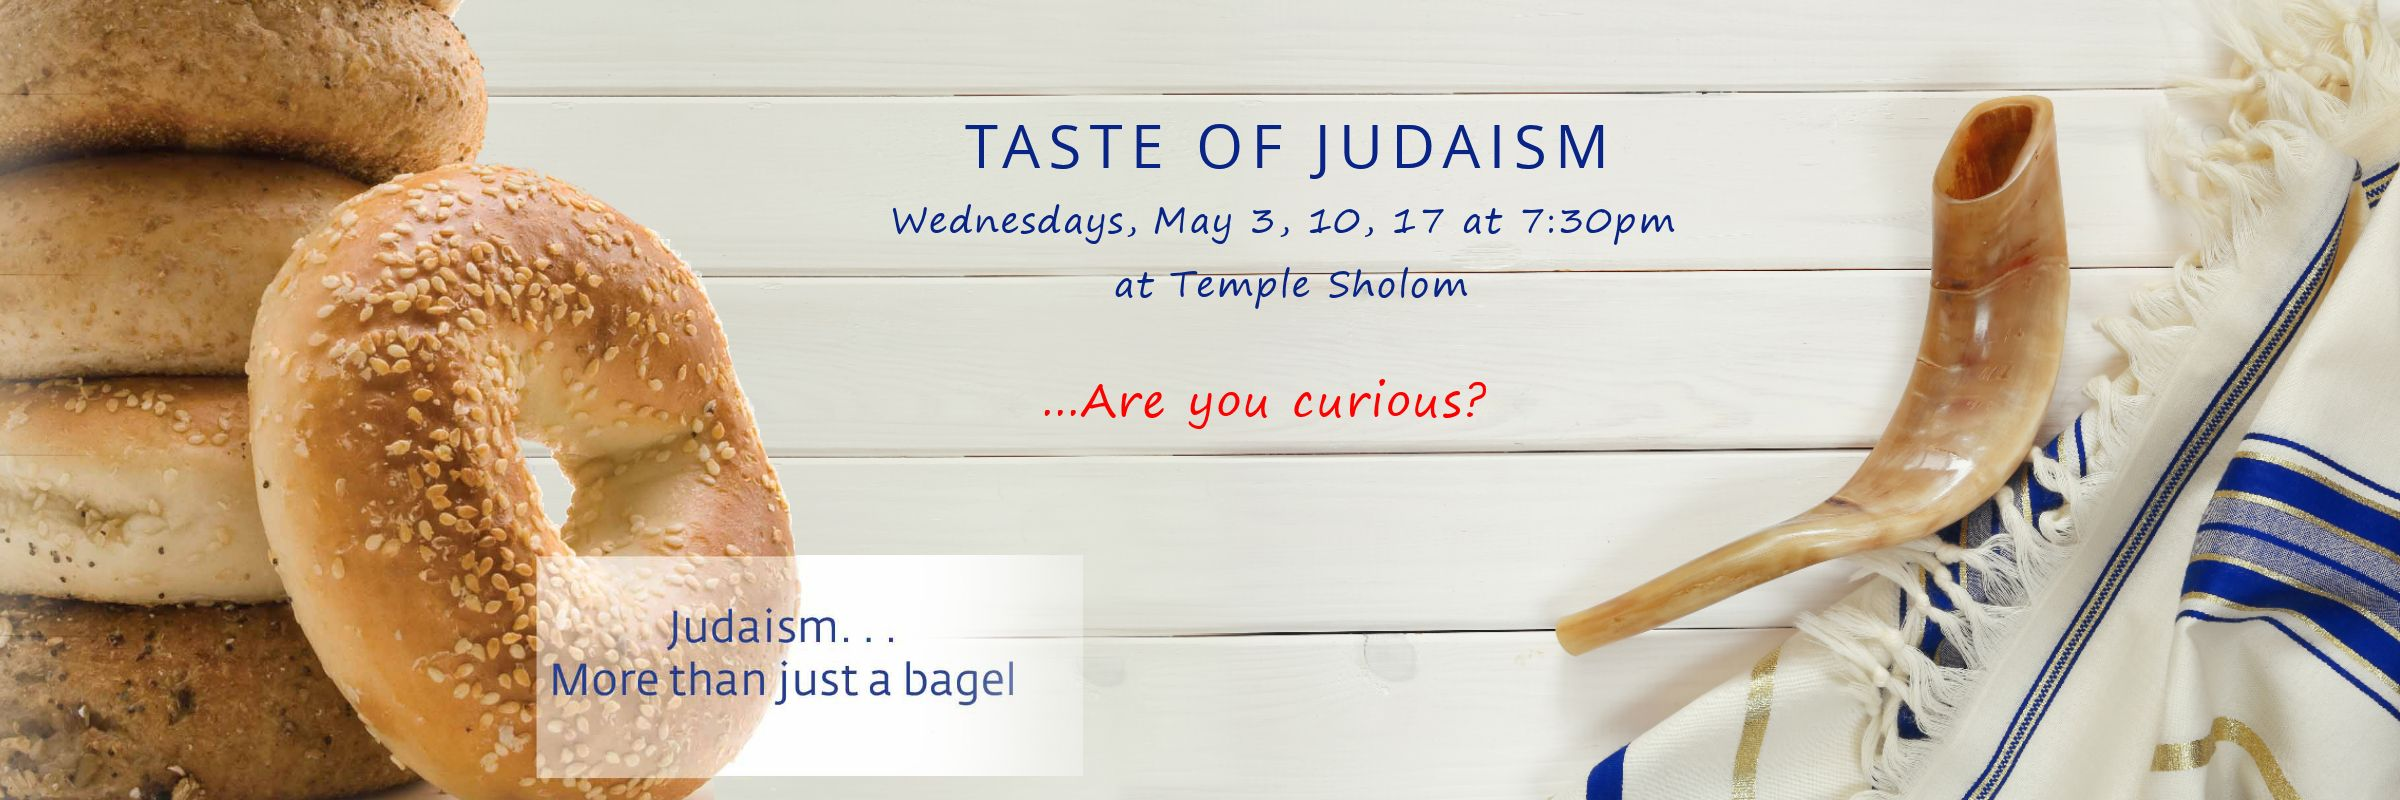 Taste of Judaism